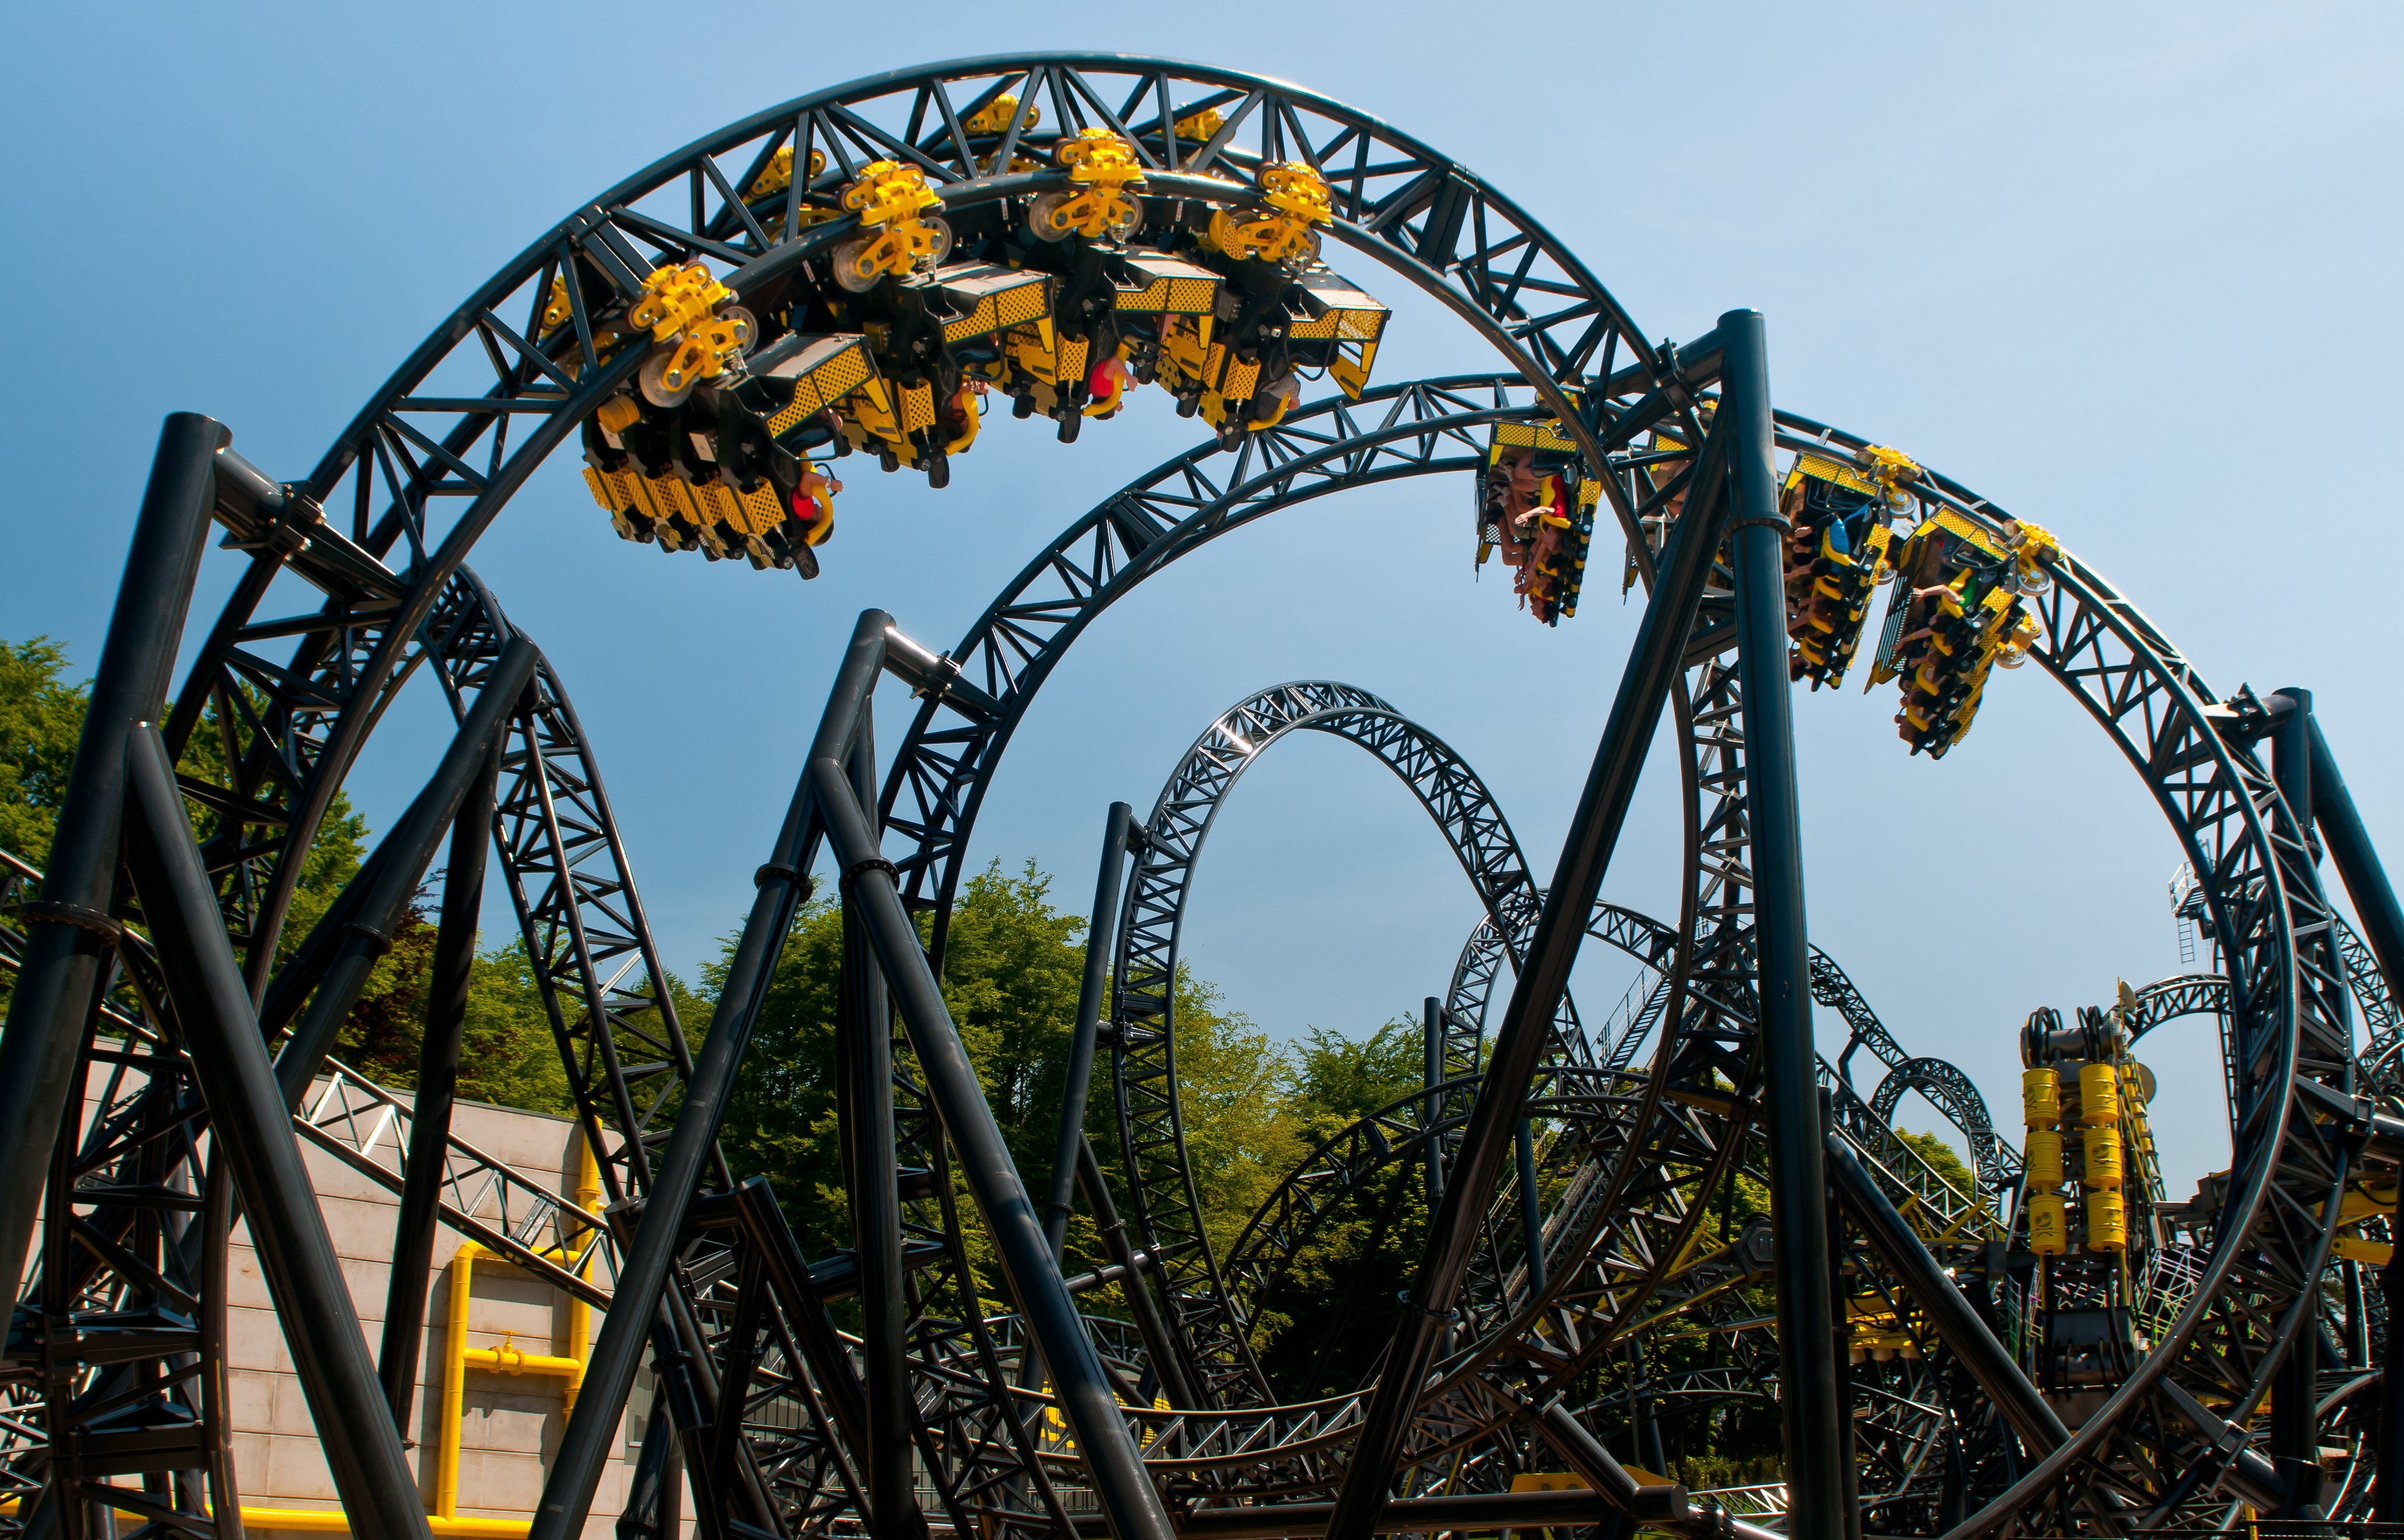 Two trains from The Smiler upside down at Alton Towers Theme Park